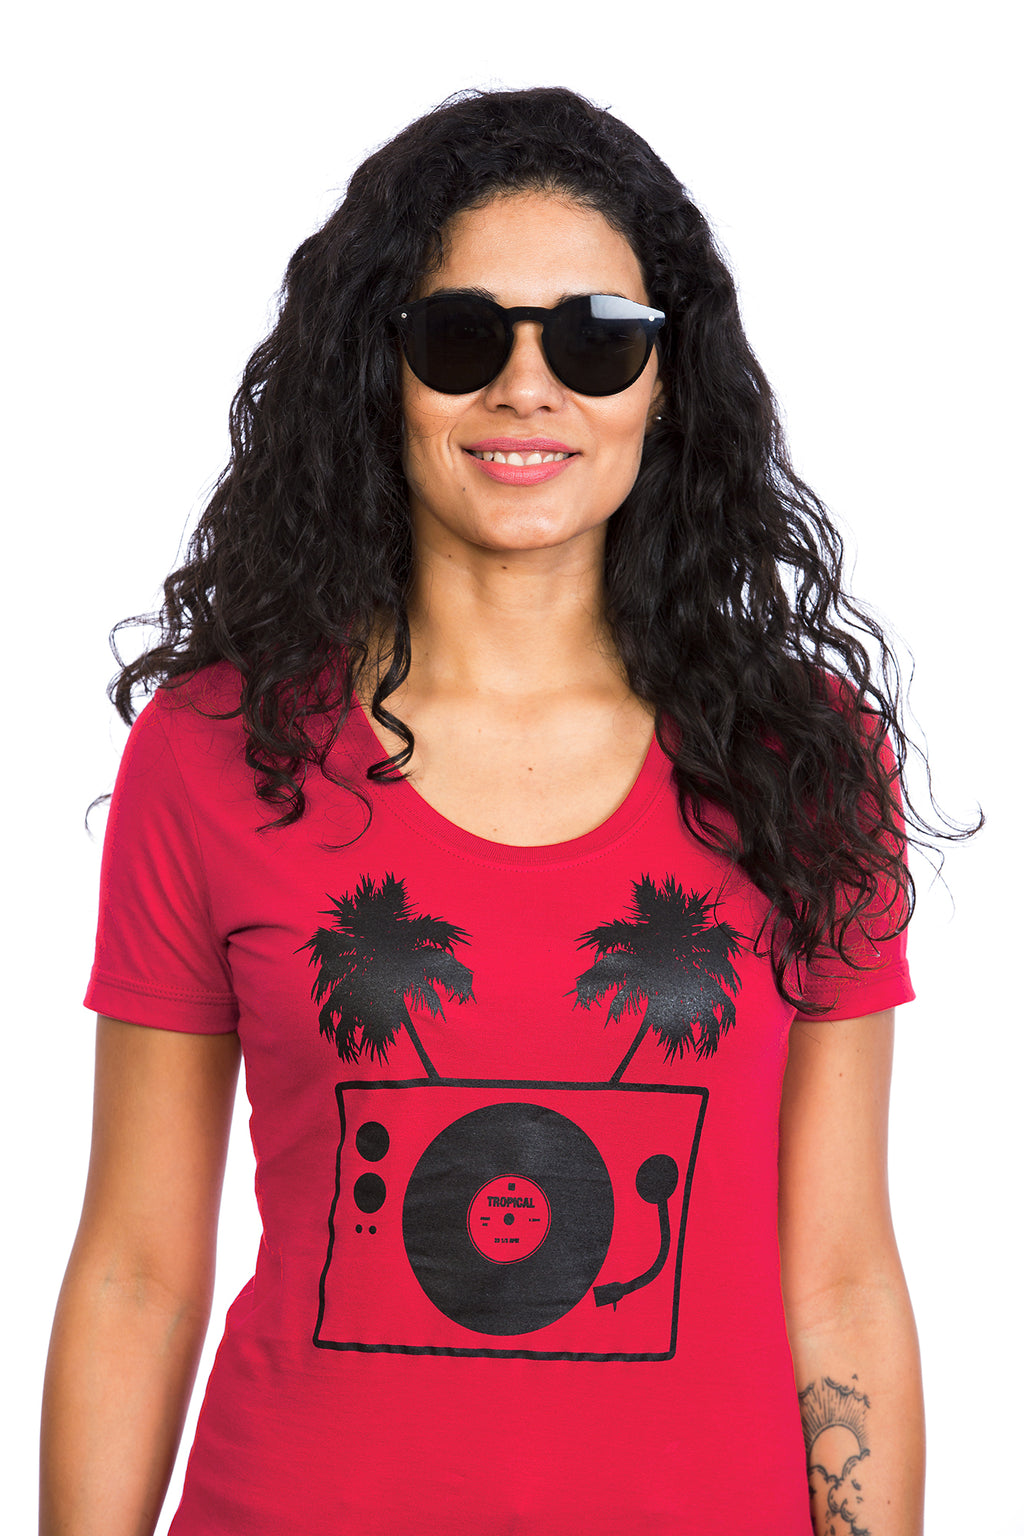 Tropical Turntable T-shirt for Women - Cotton